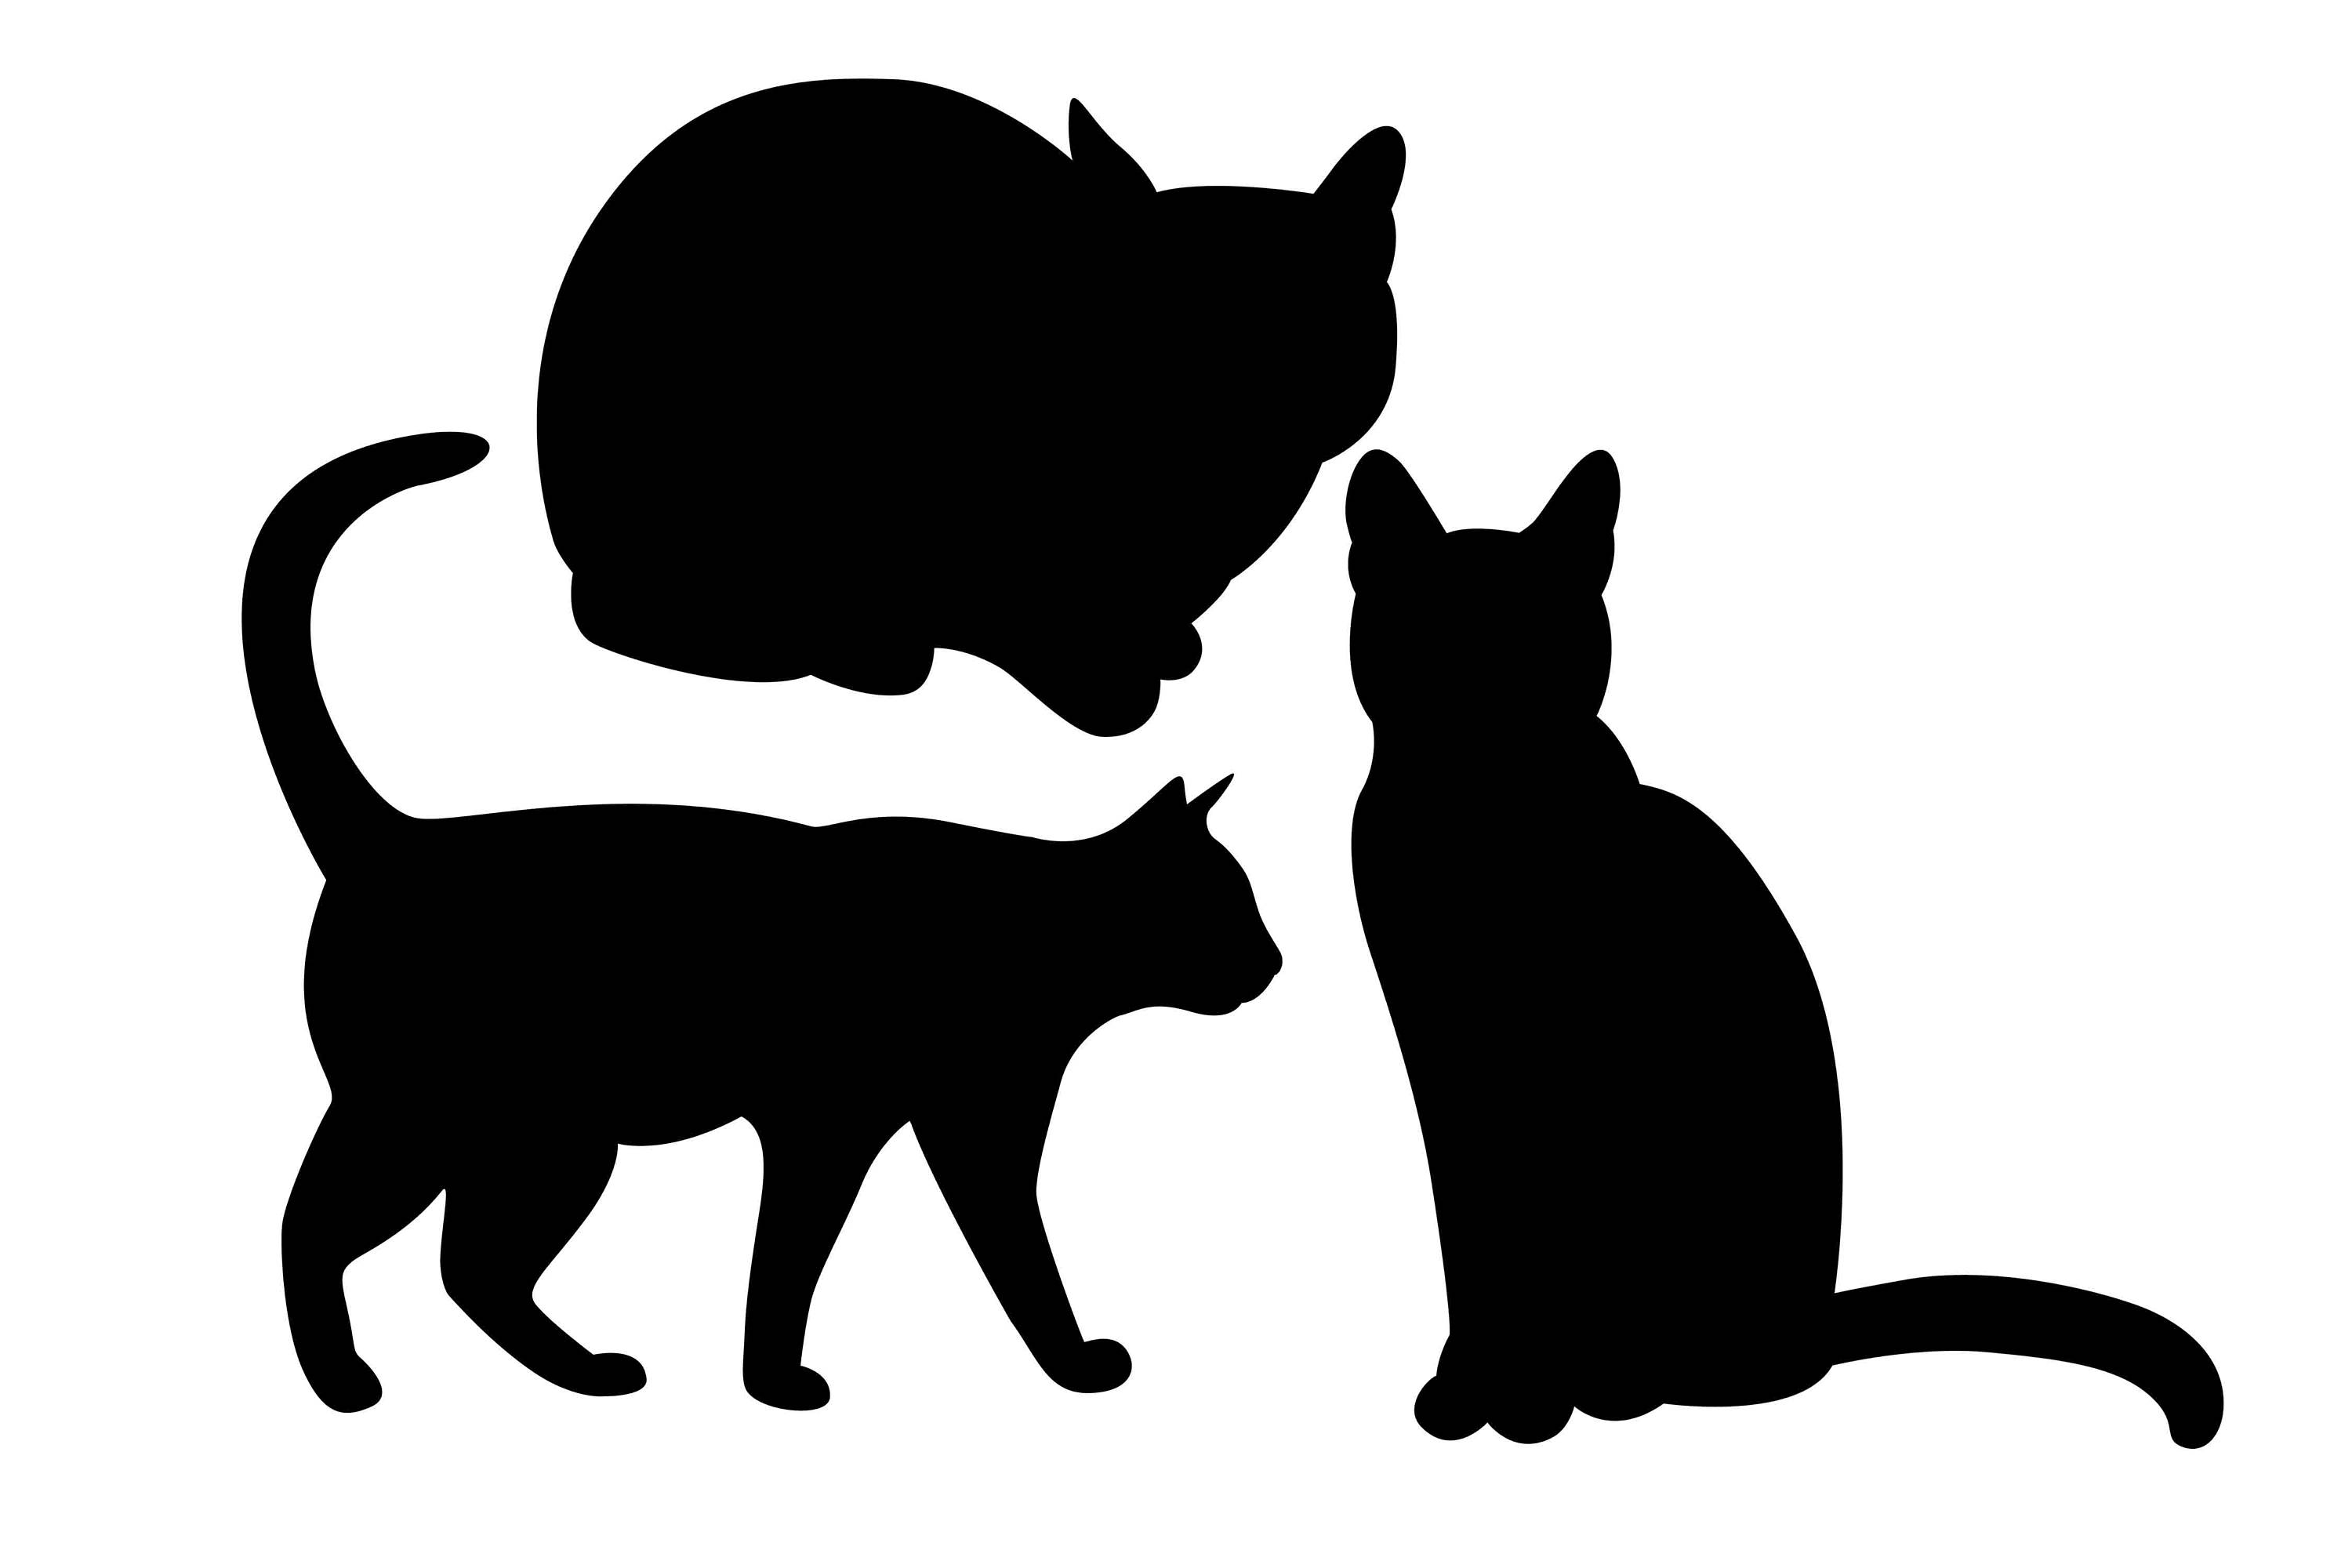 3000x2000 Cat Silhouette, Cat Clipart, Kitty Silhouette, Domestic Animal